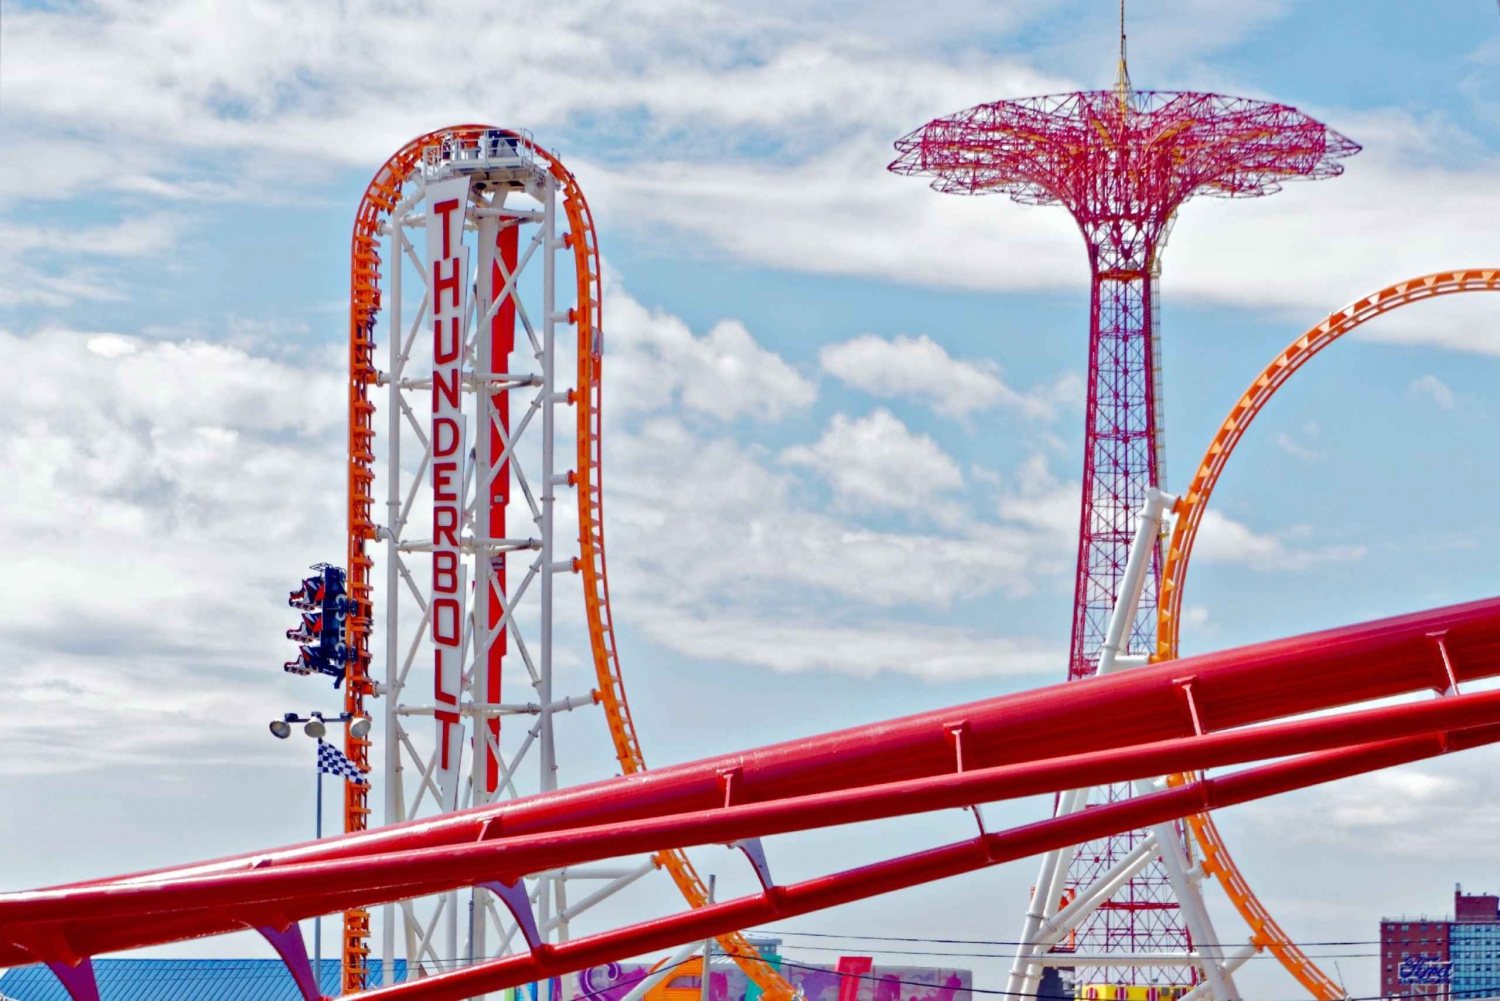 Coney Island: All-Day Pass to Luna Park